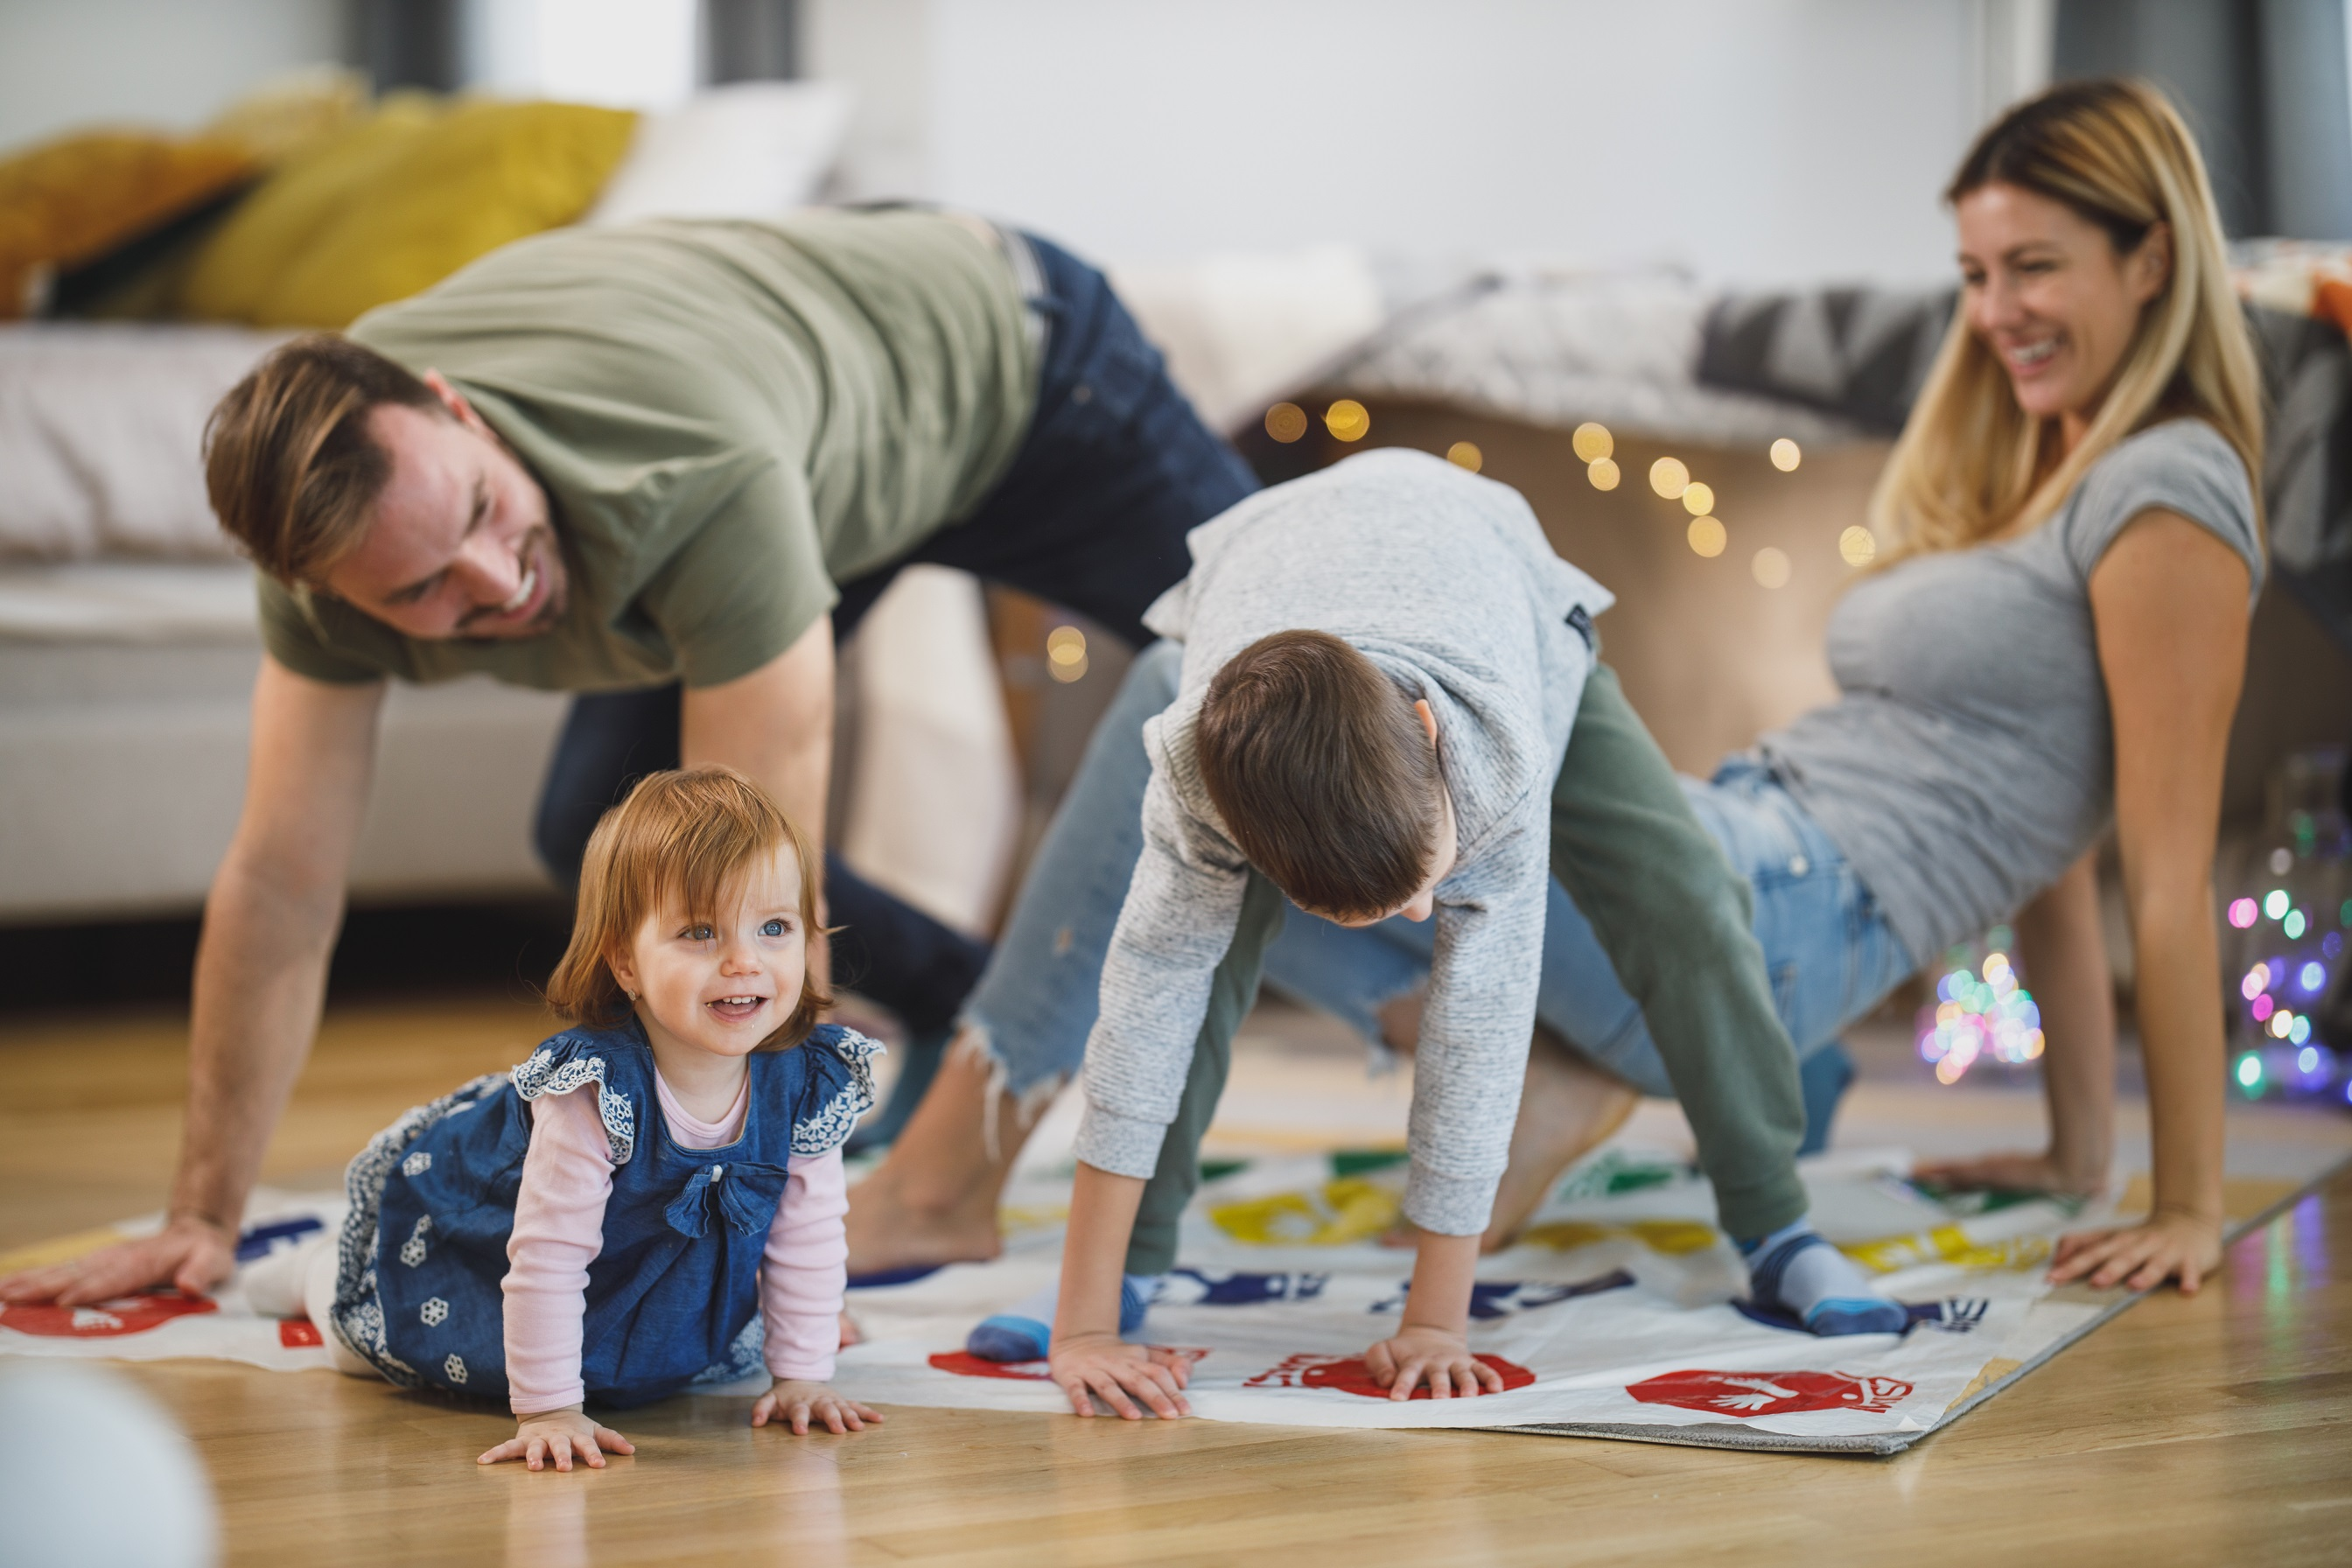 Mum and dad playing with children on the floor